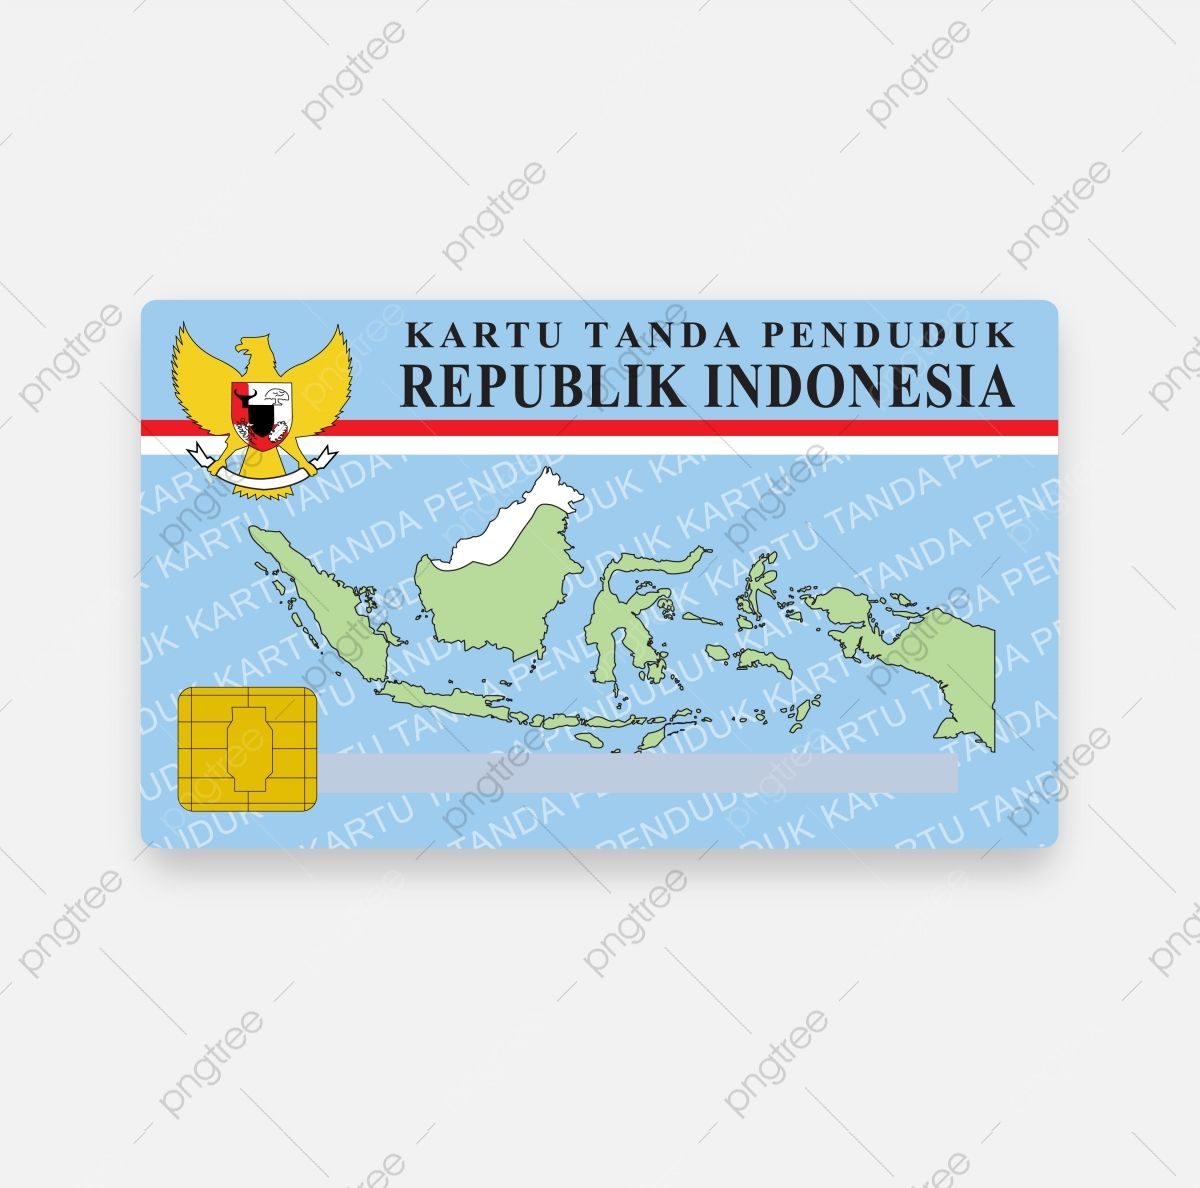 Ktp Indonesia E Ktp Id Card in 2020 Logo design free